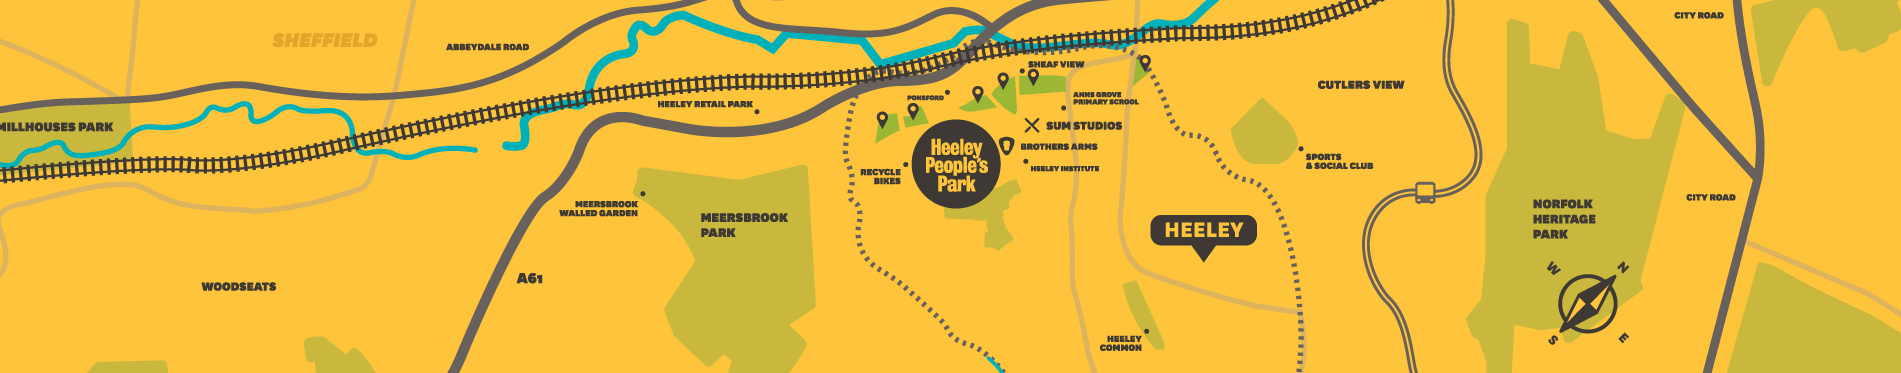 Heeley People's Park Map